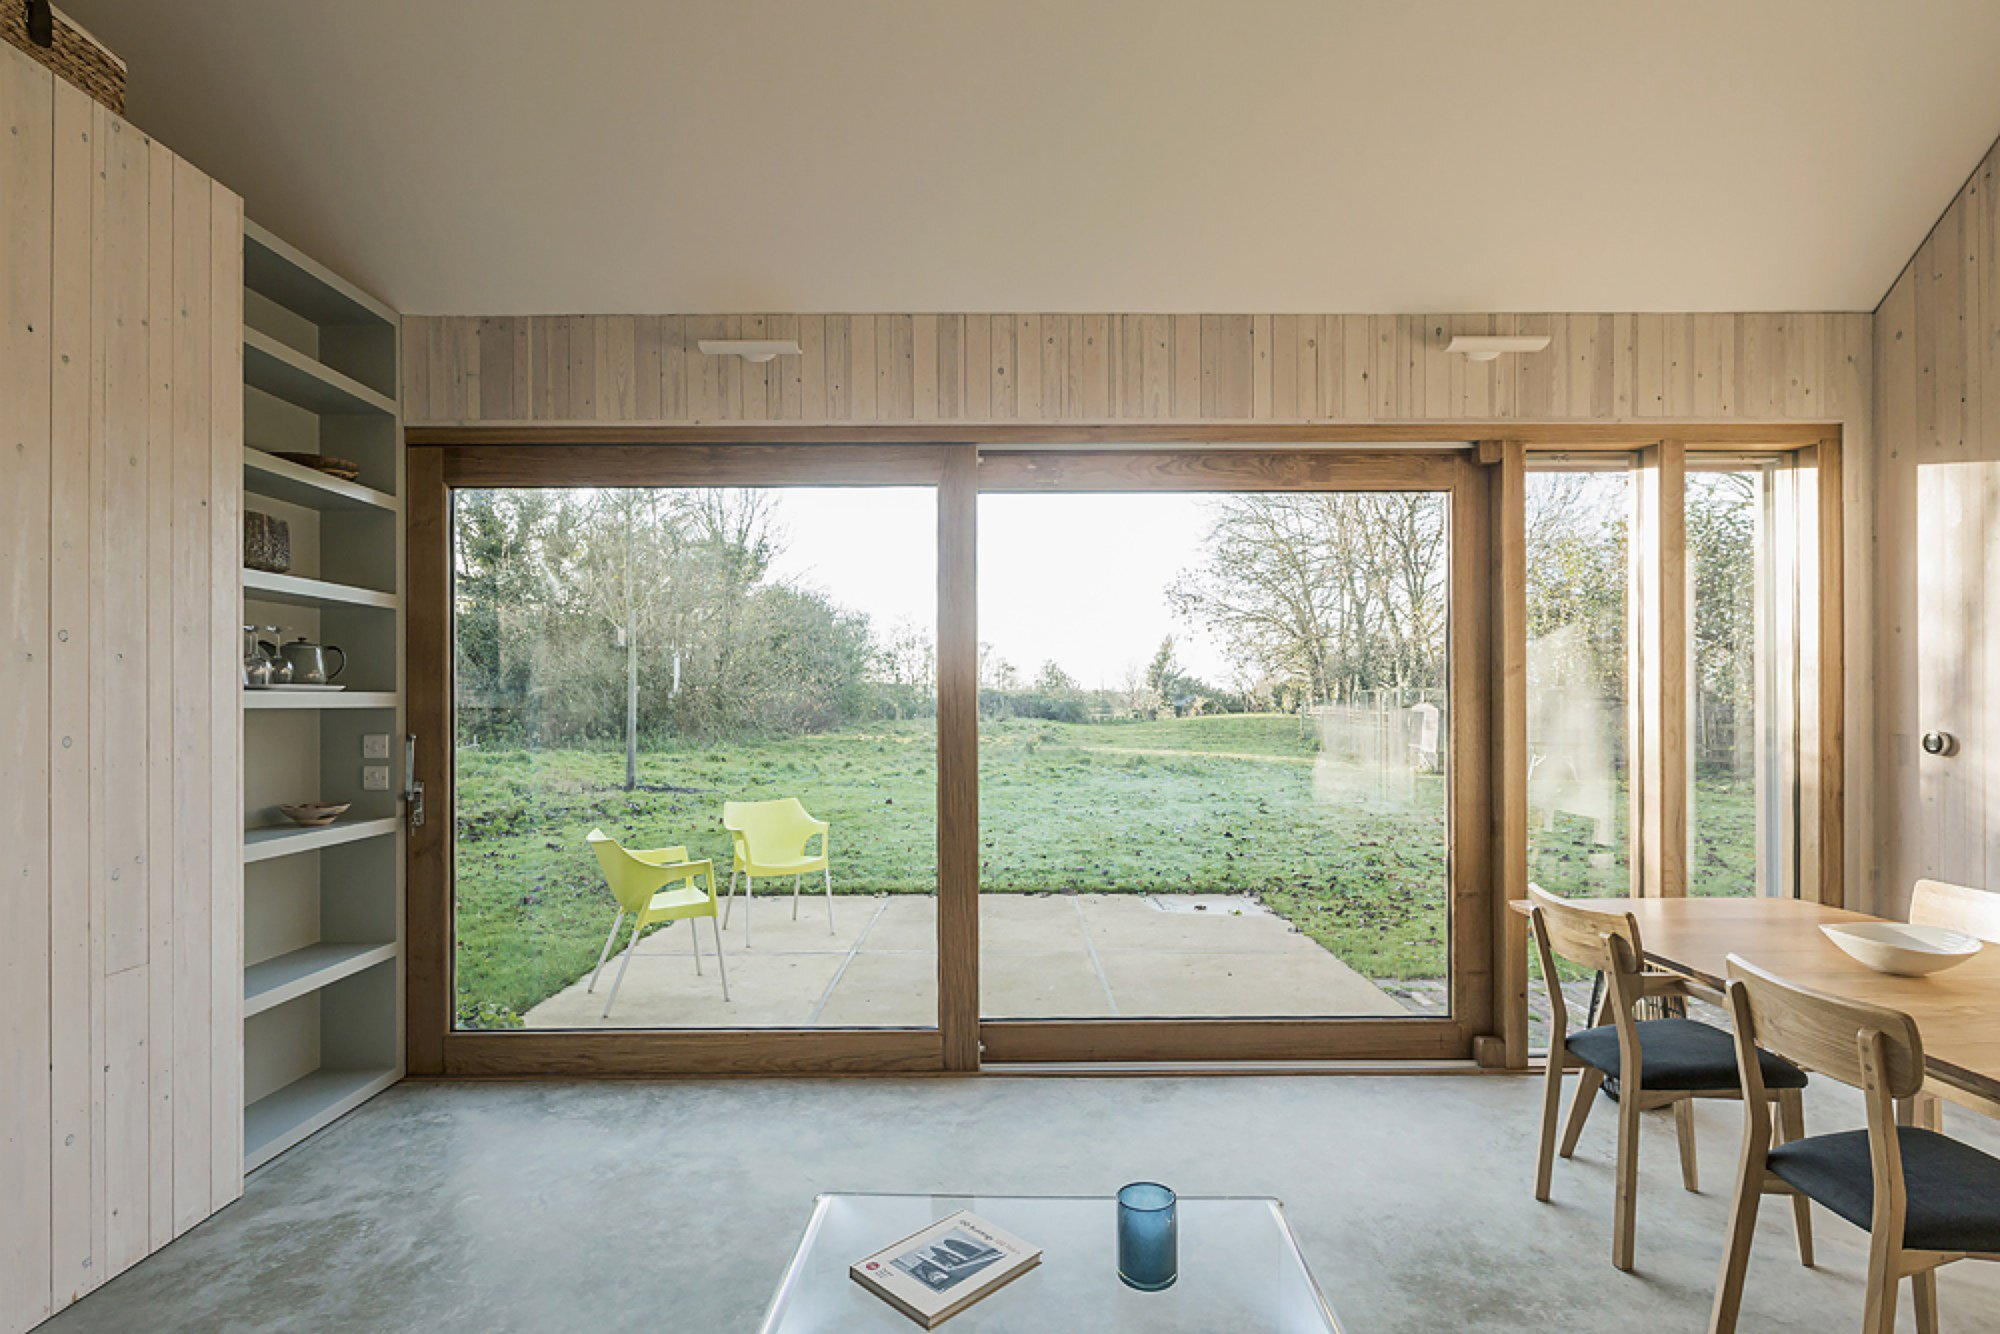 Garden Buildings Warmington - Ashworth Parkes Architects - UK - View - Humble Homes